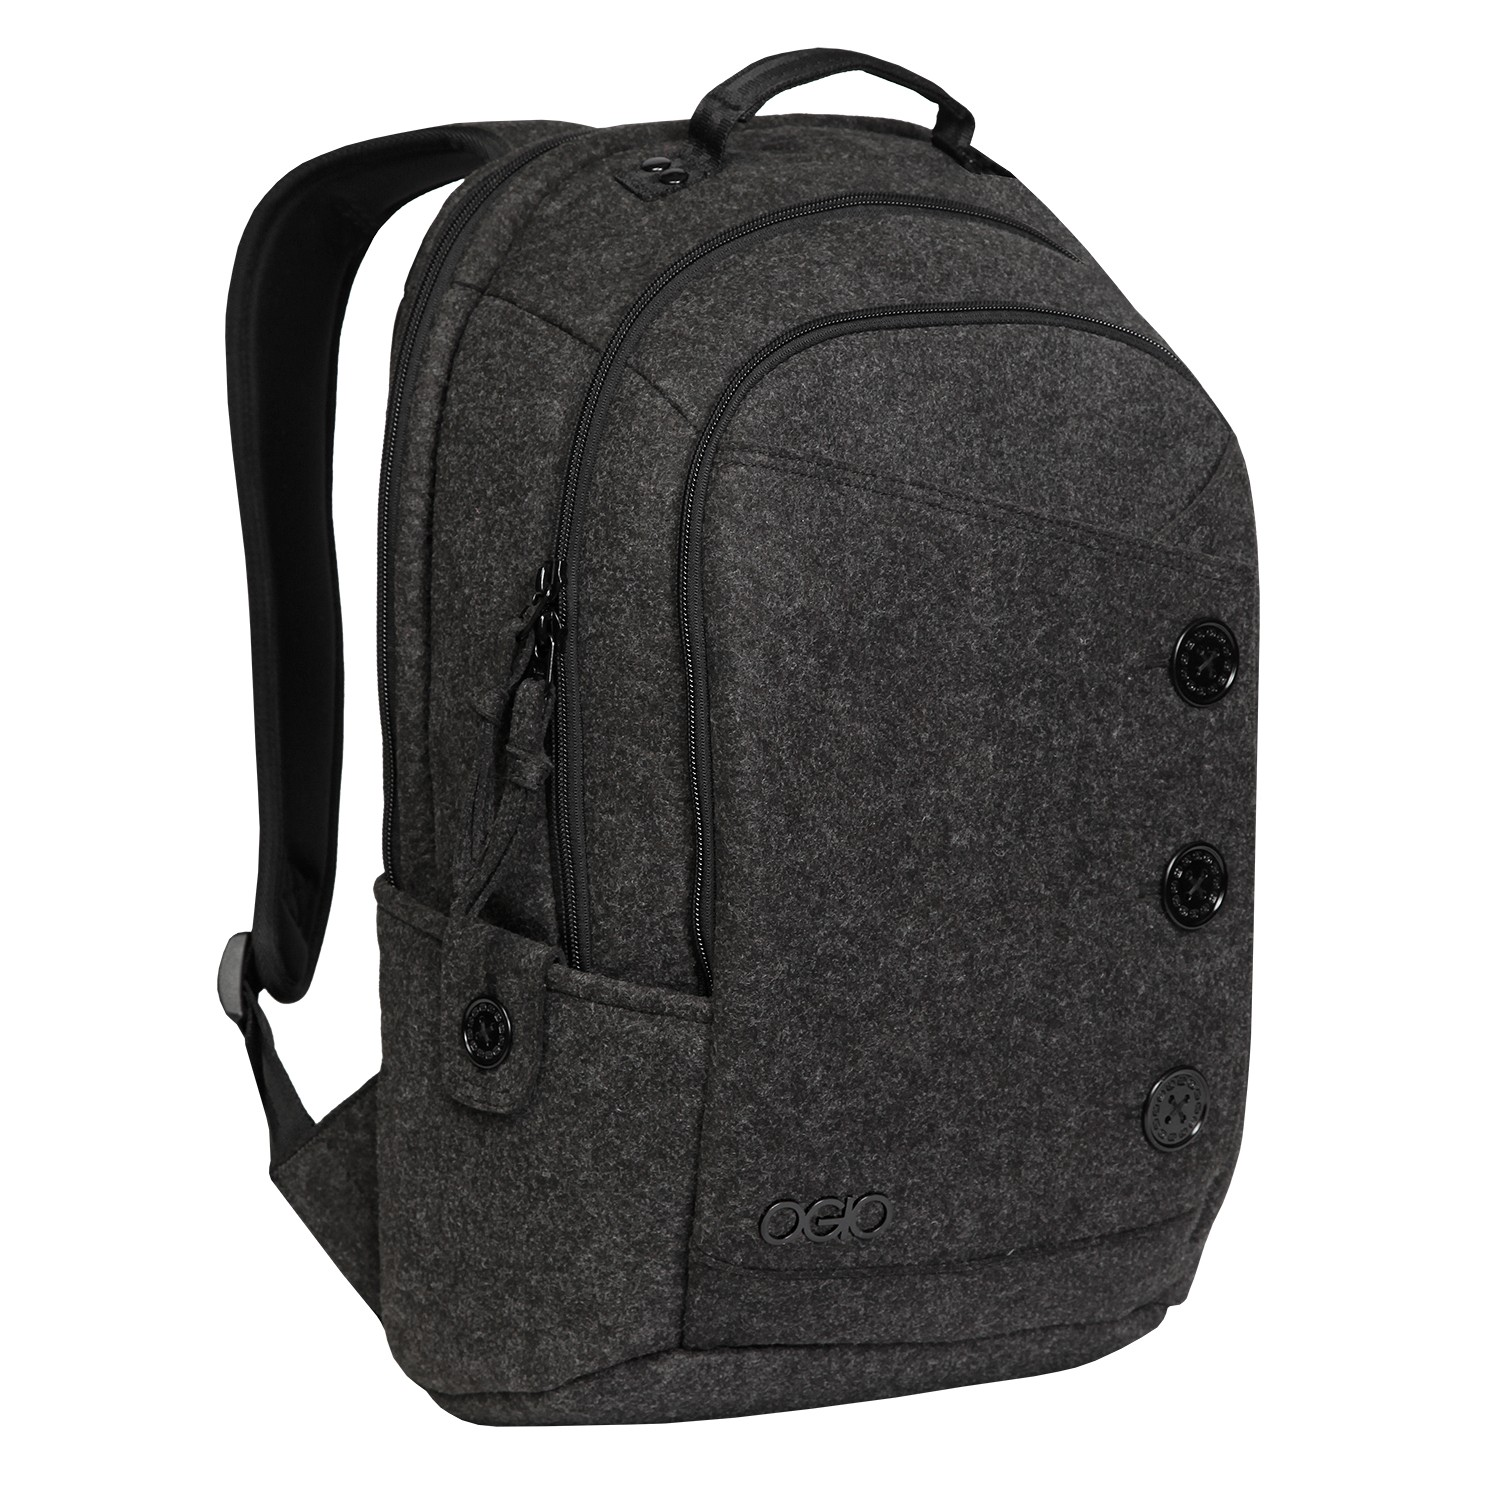 Ogio Soho Laptop Backpack 1SCiwK5l